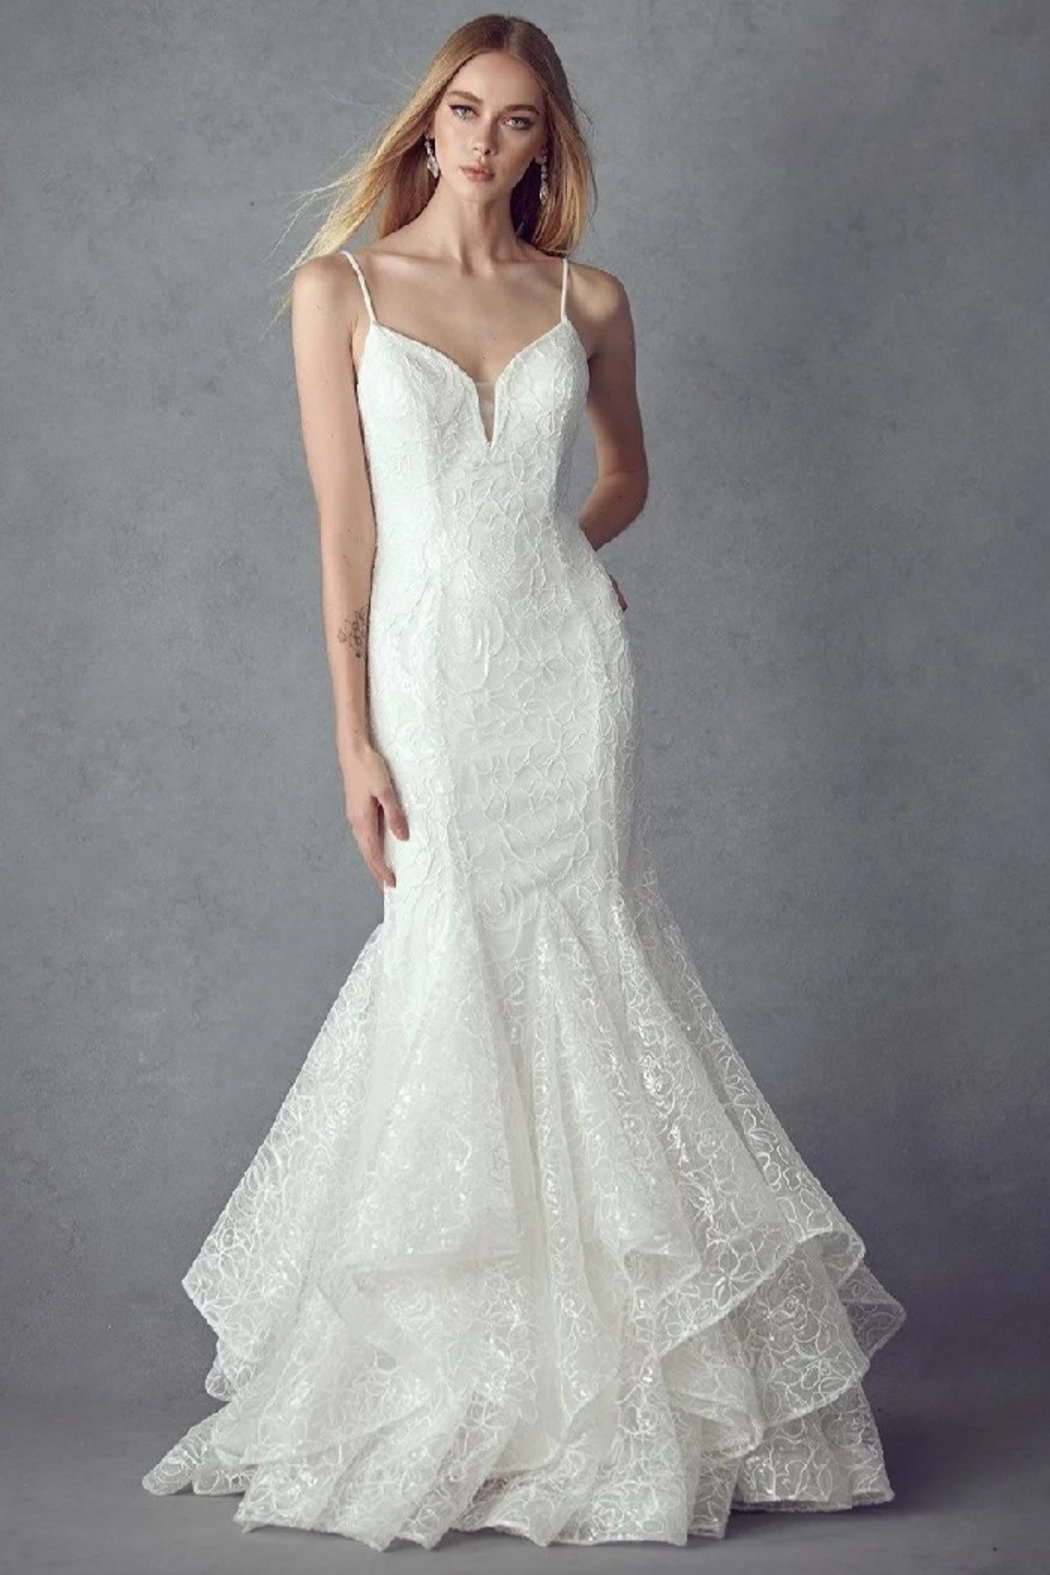 Juliet Off White Sequin Mermaid Bridal Gown - Main Image